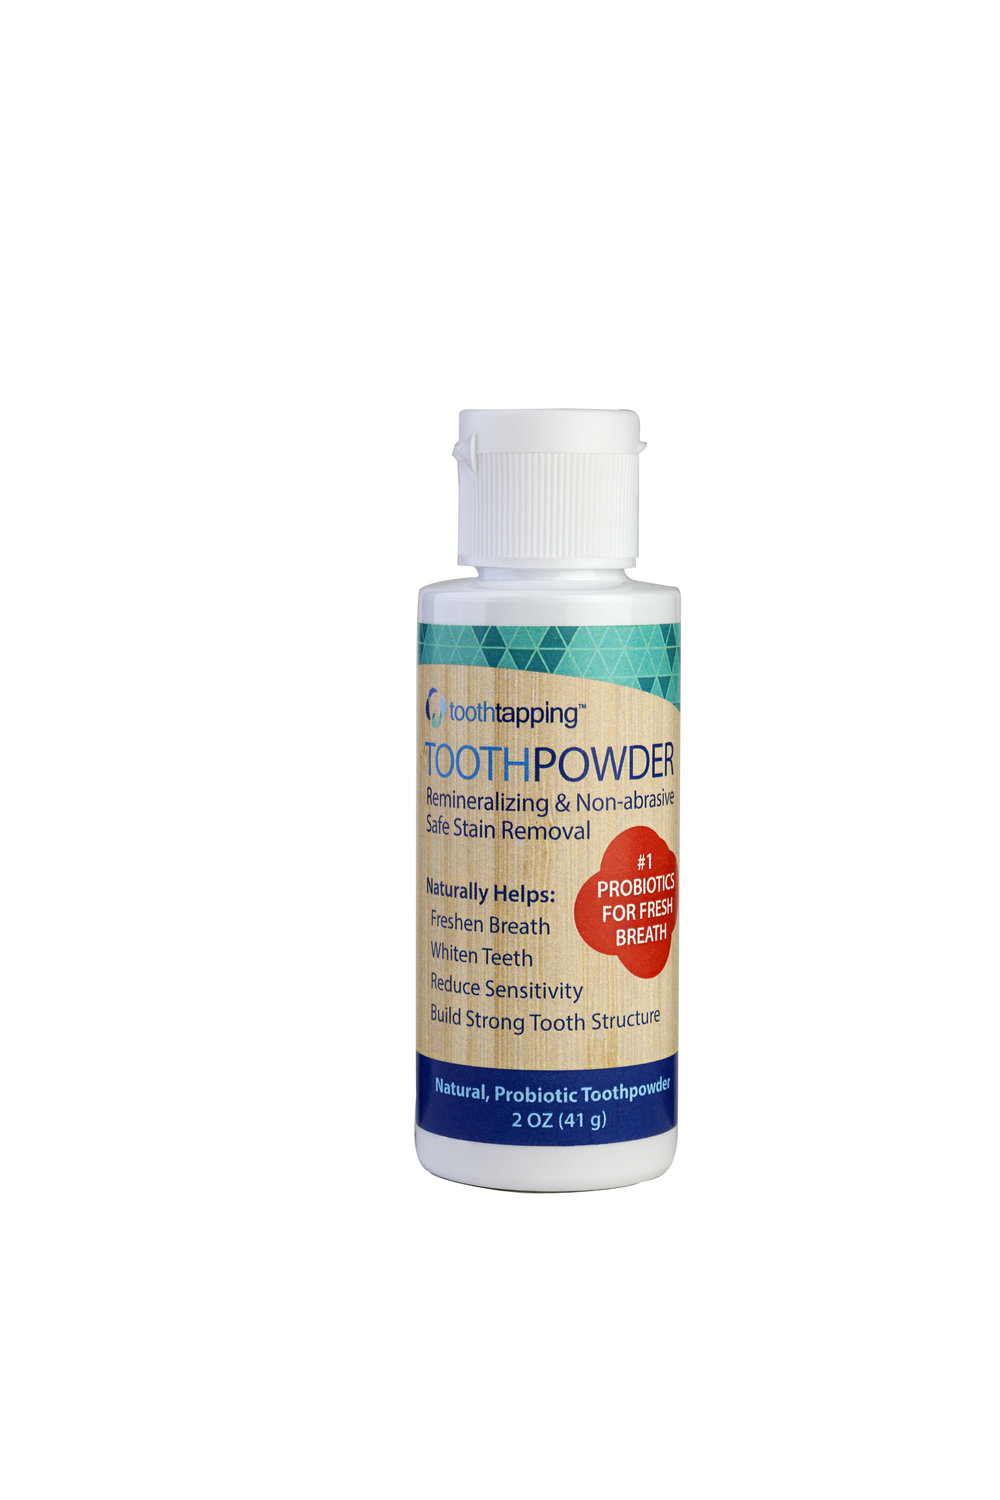 Toothtapping Tooth Powder